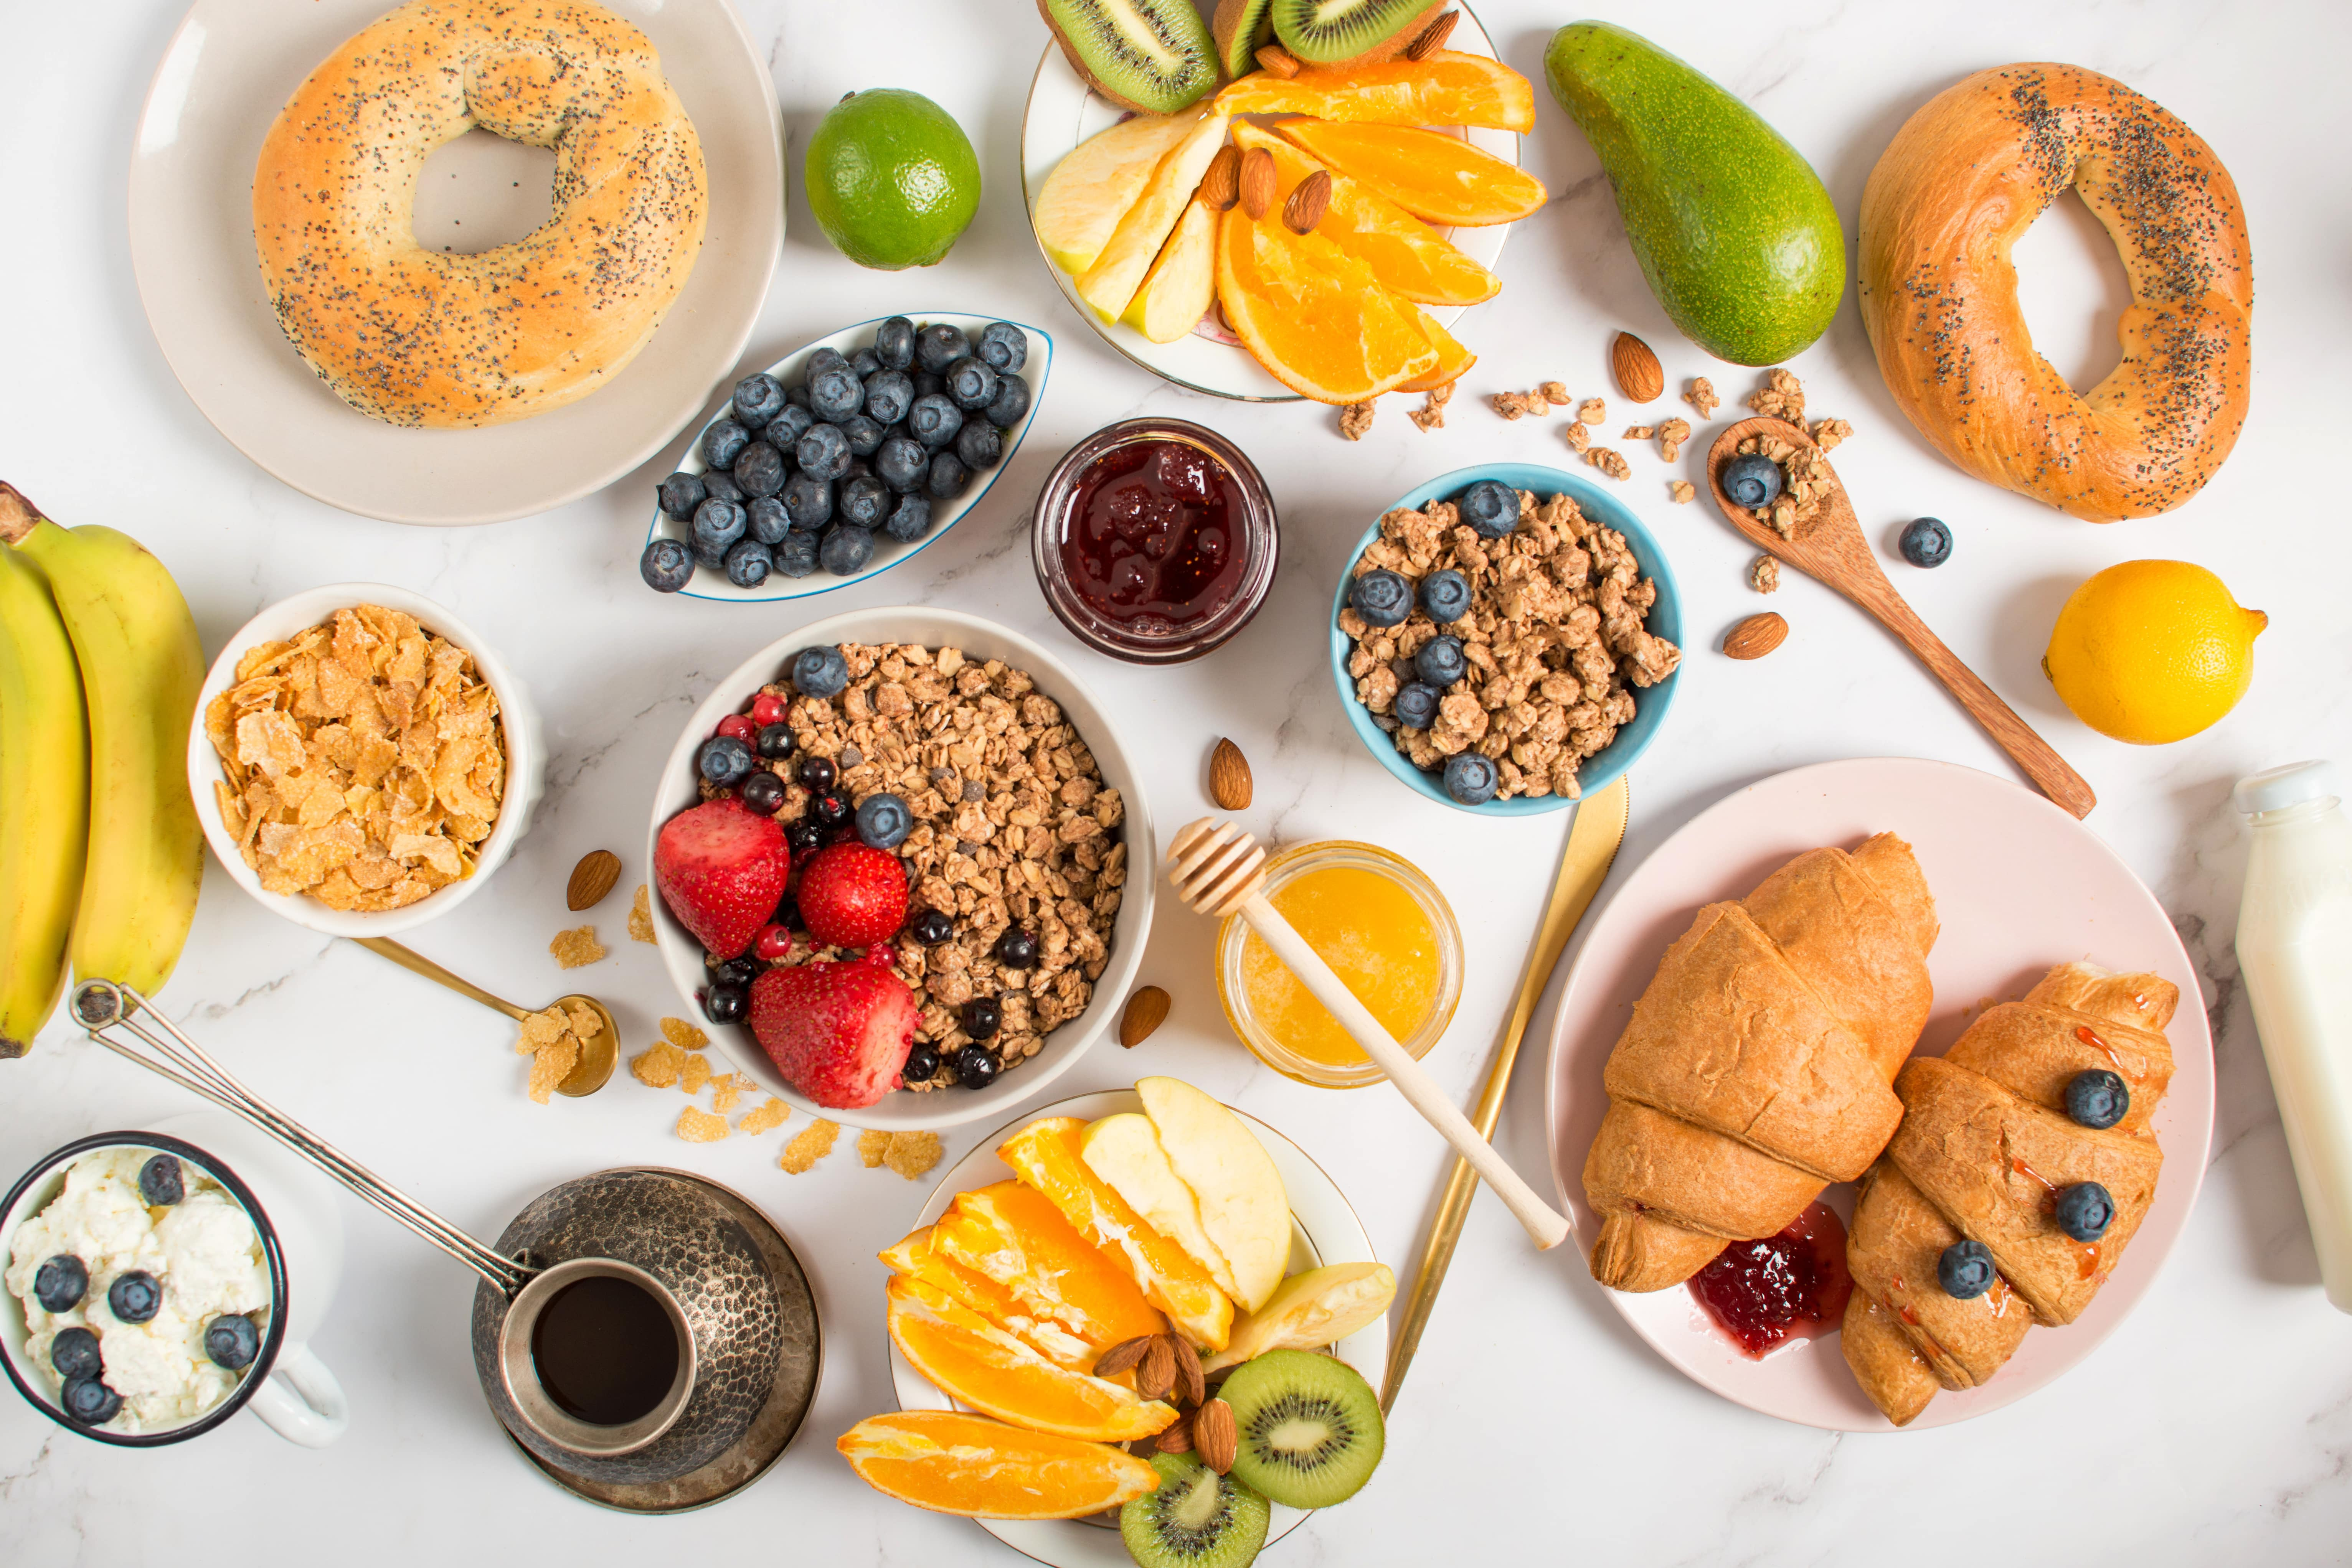 7 Reasons Why Eating Breakfast is Crucial for Weight Loss